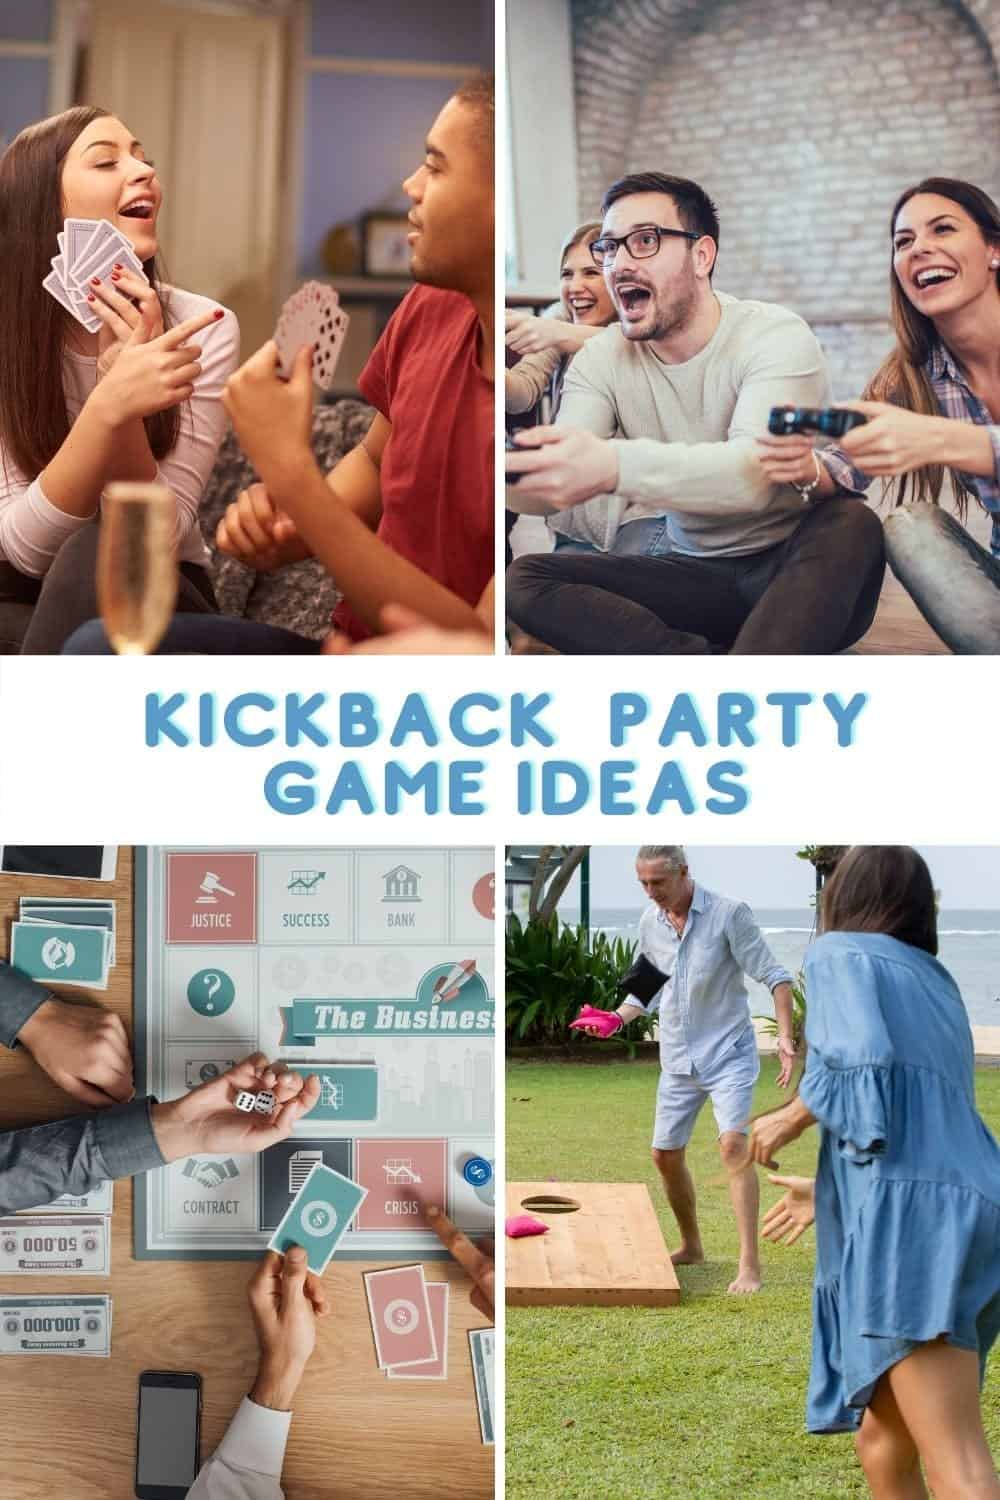 people playing kickback party games